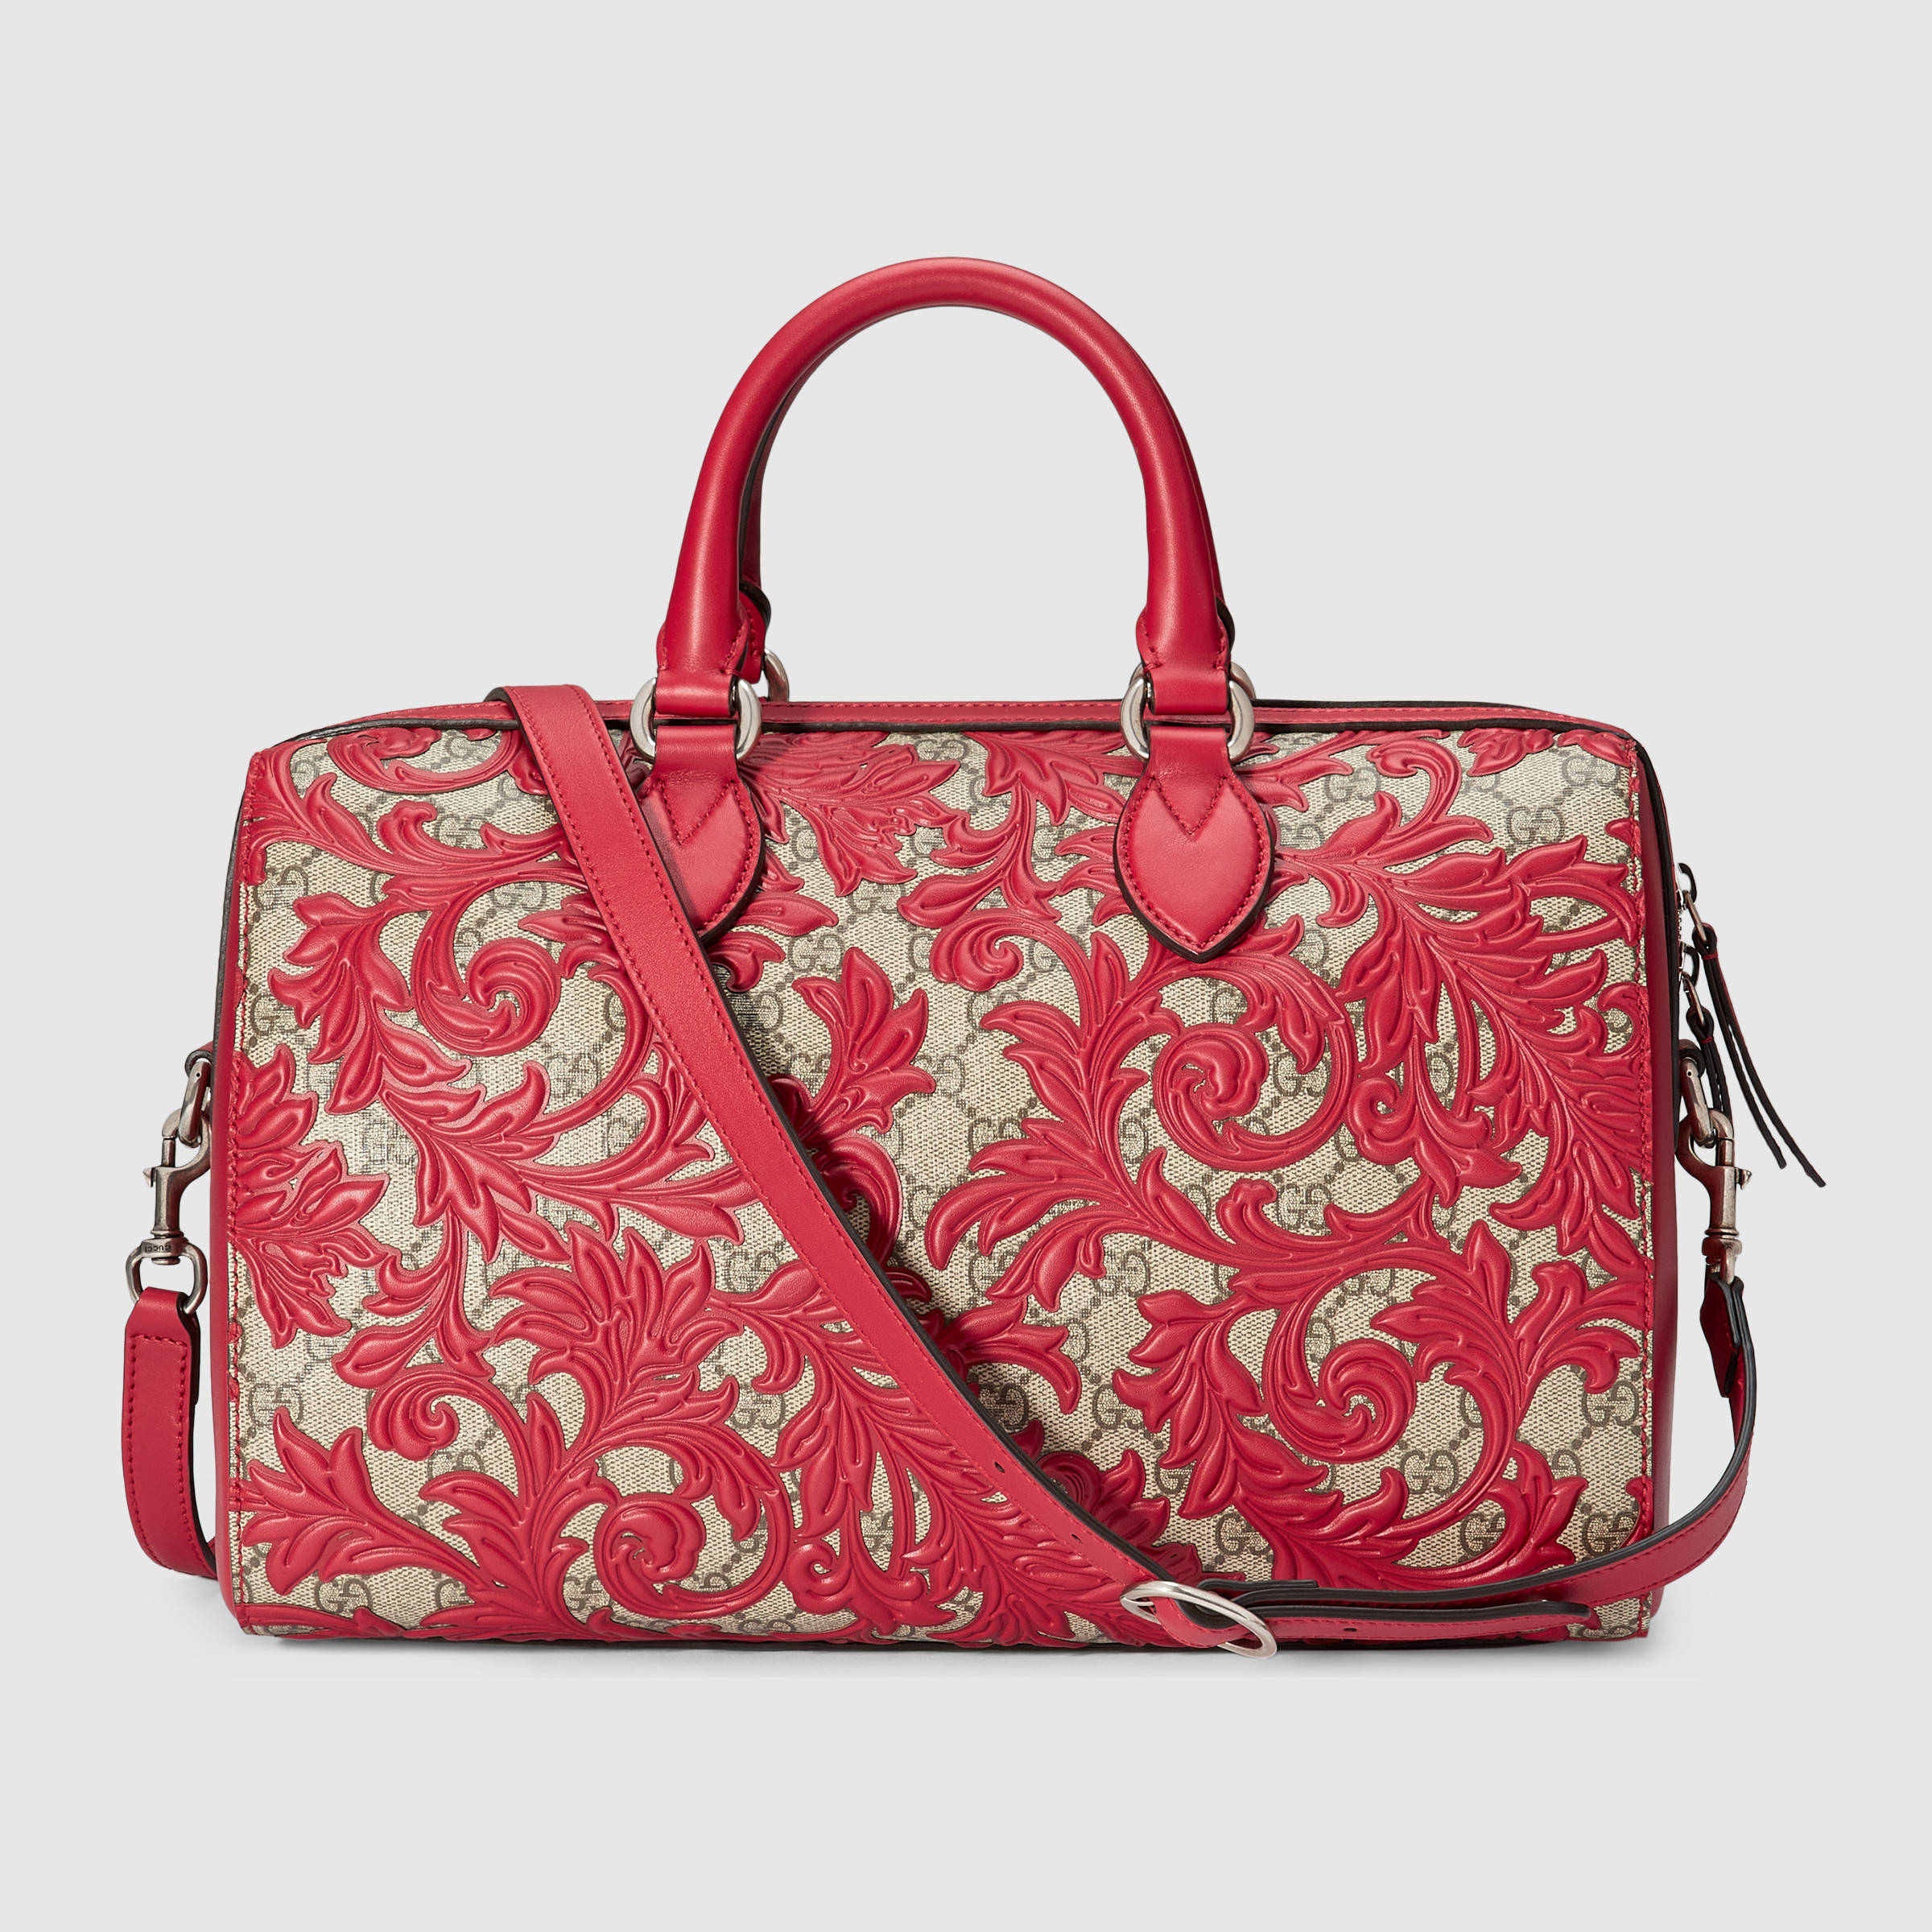 89726ec0fb79 Gucci Arabesque Gg Supreme Top Handle Bag in Red - Lyst